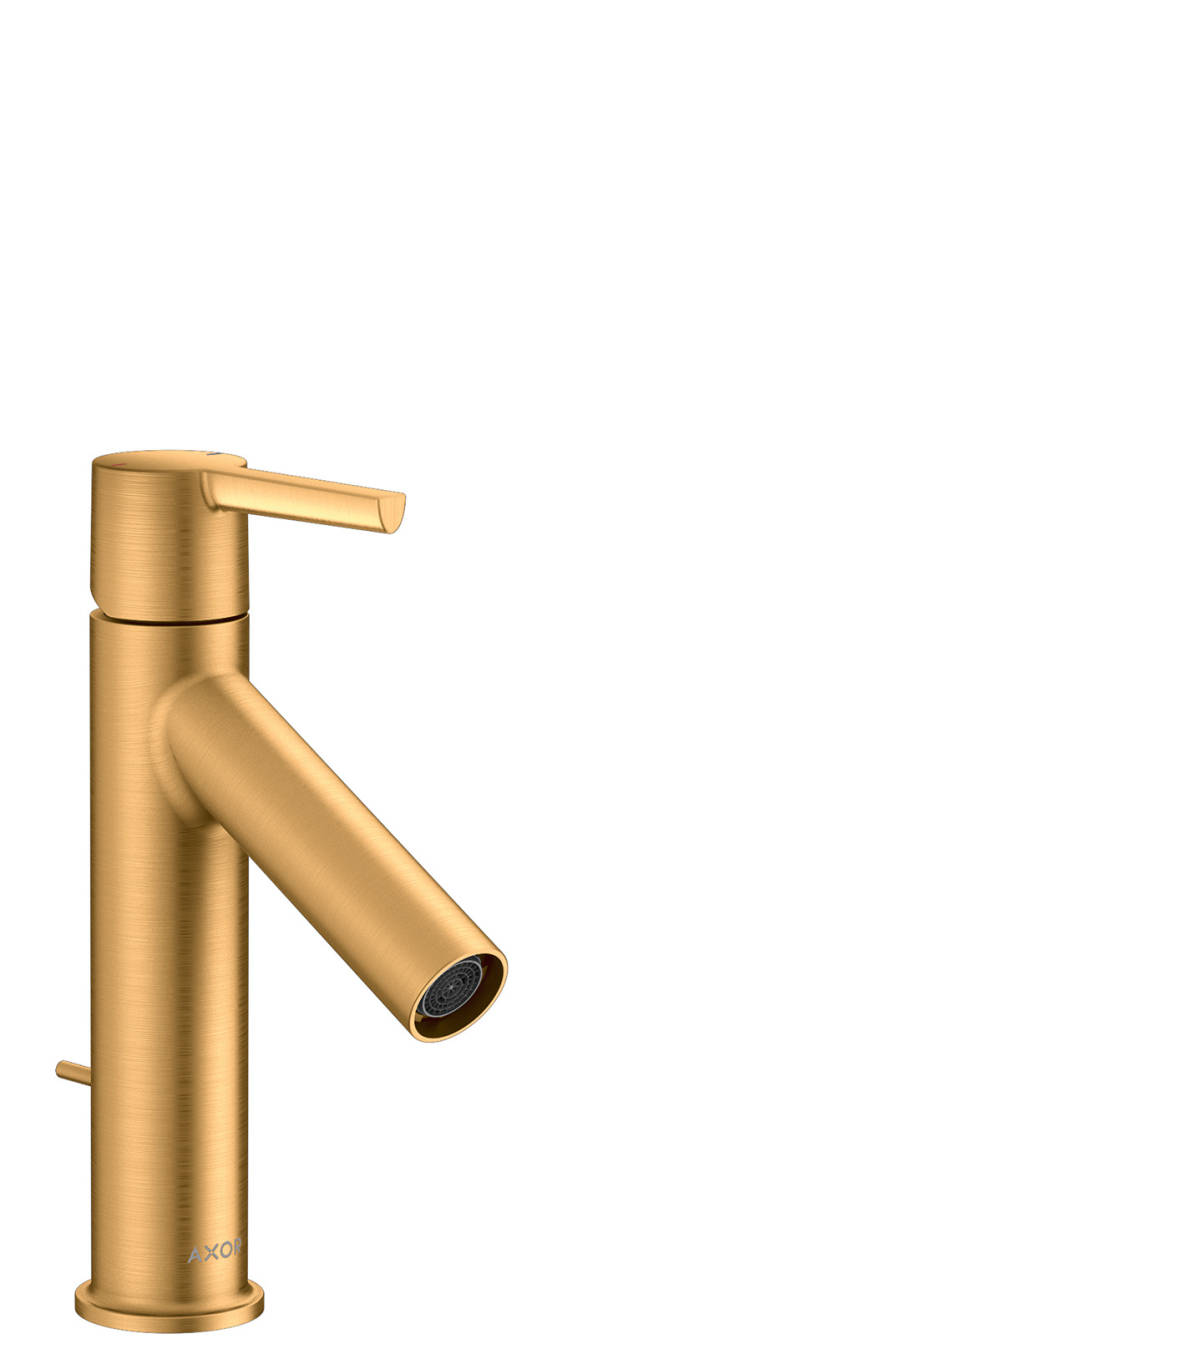 Single lever basin mixer 100 with lever handle and pop-up waste set, Brushed Gold Optic, 10001250